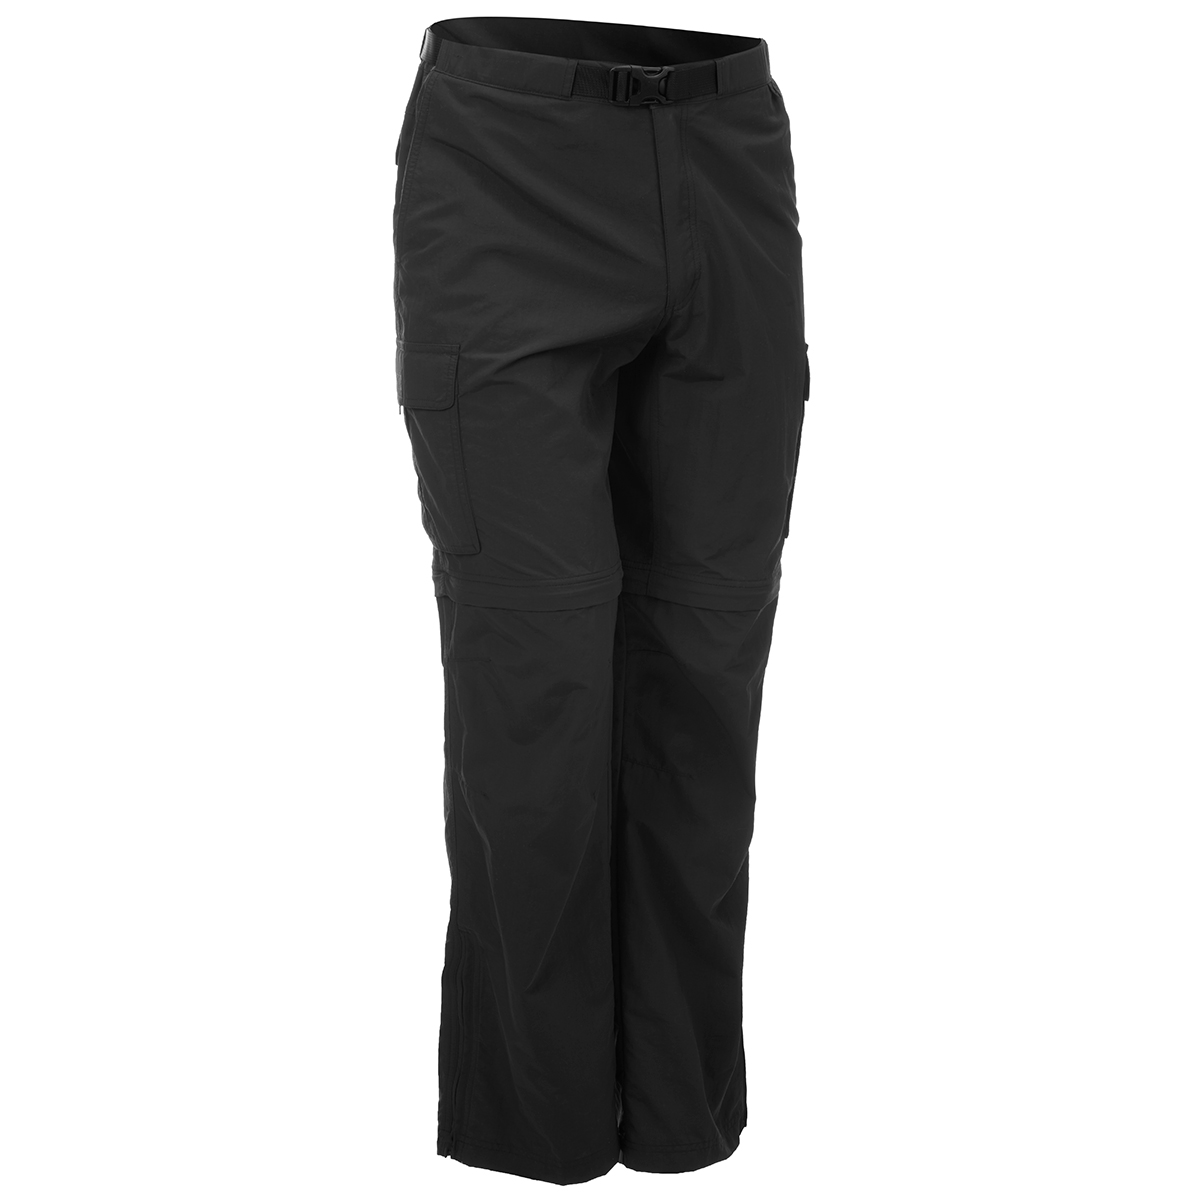 Ems Men's Camp Cargo Zip-Off Pants - Black, 36/32